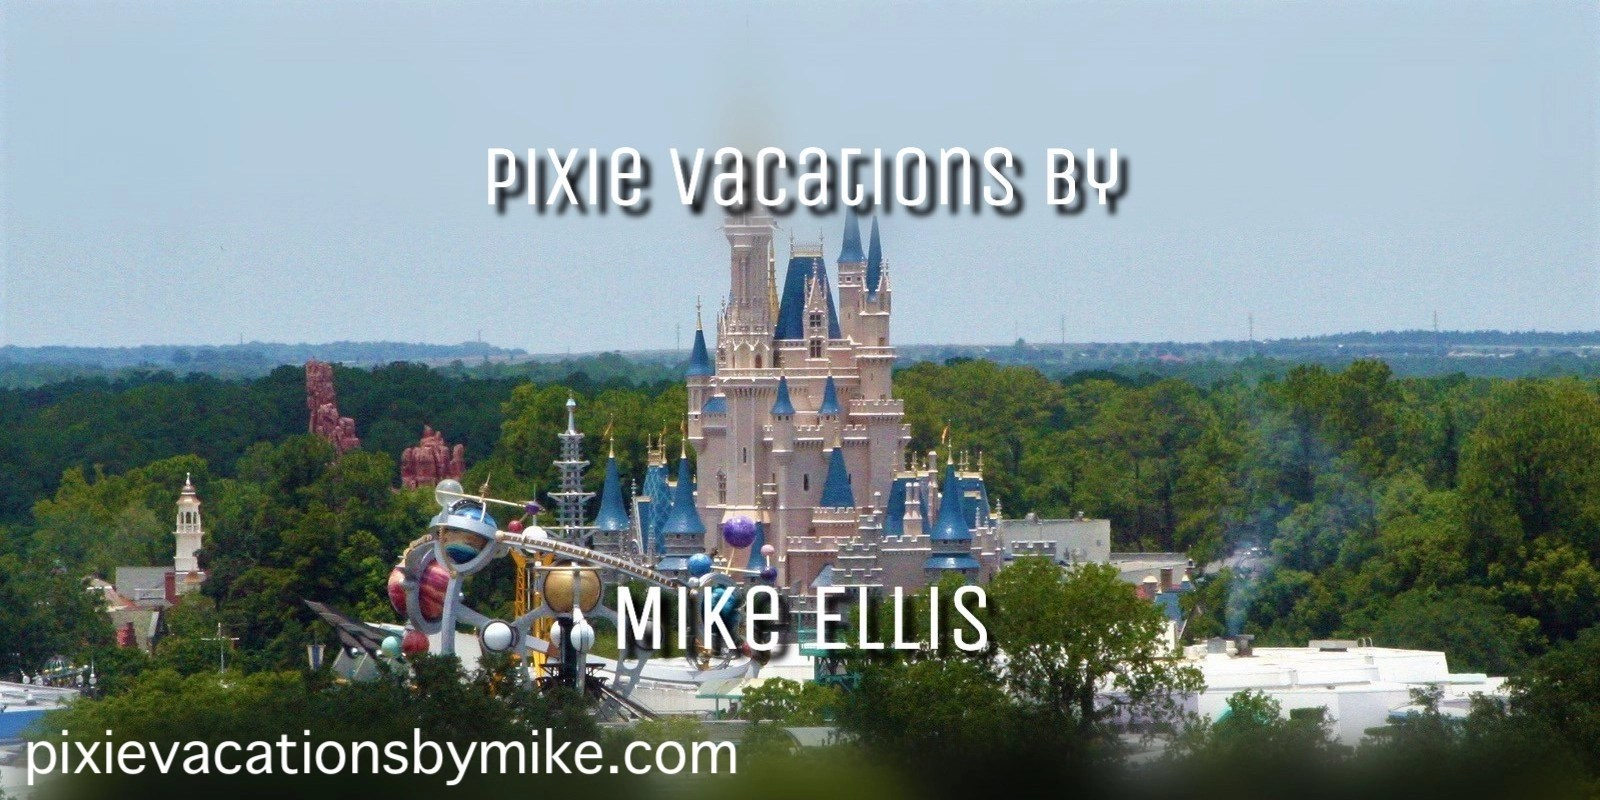 Pixie Vacations by Mike